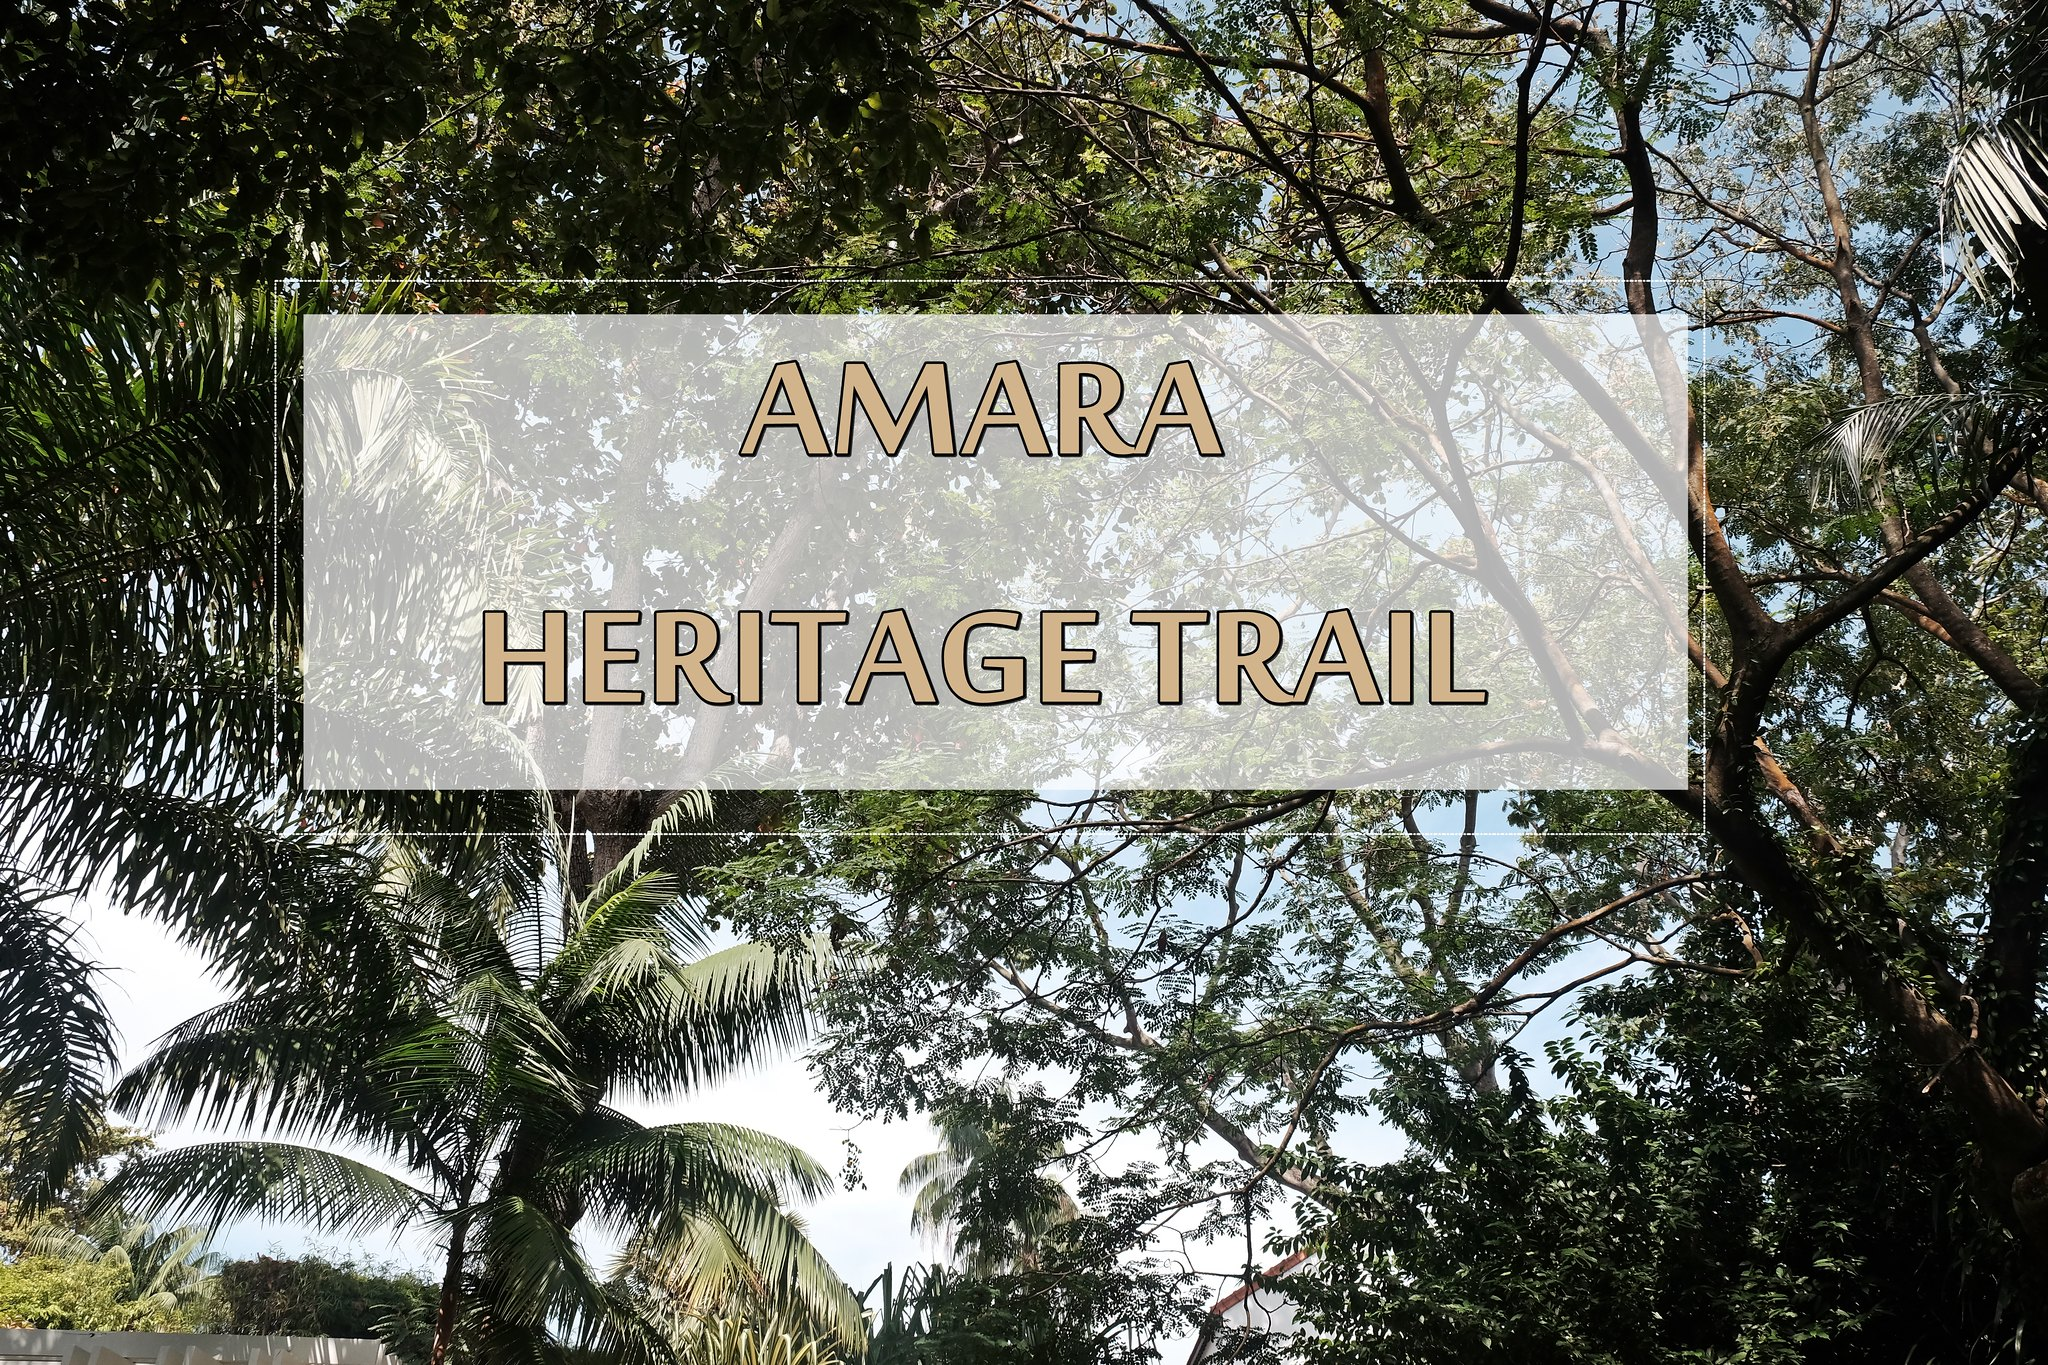 [SG TRAVELS] AMARA Sanctuary Resort Sentosa Heritage Trail – A Glimpse of The History of British Colonial Days & Sentosa Singapore